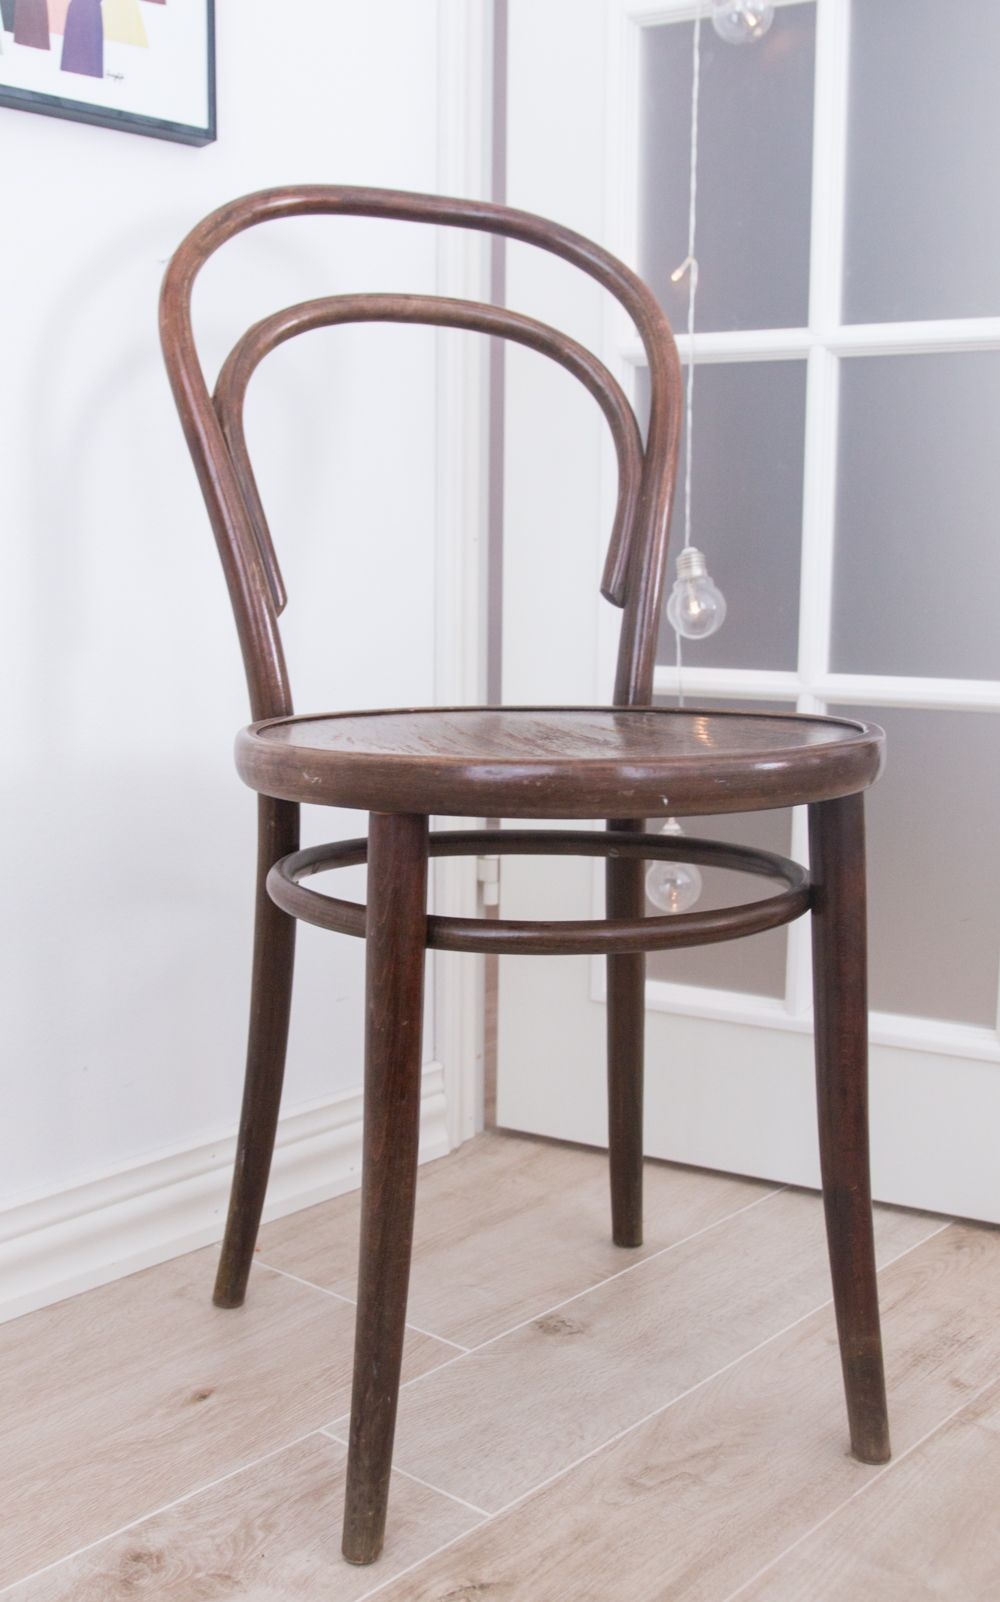 chairs-no-home-without-you-1-of-1 Thonet chair